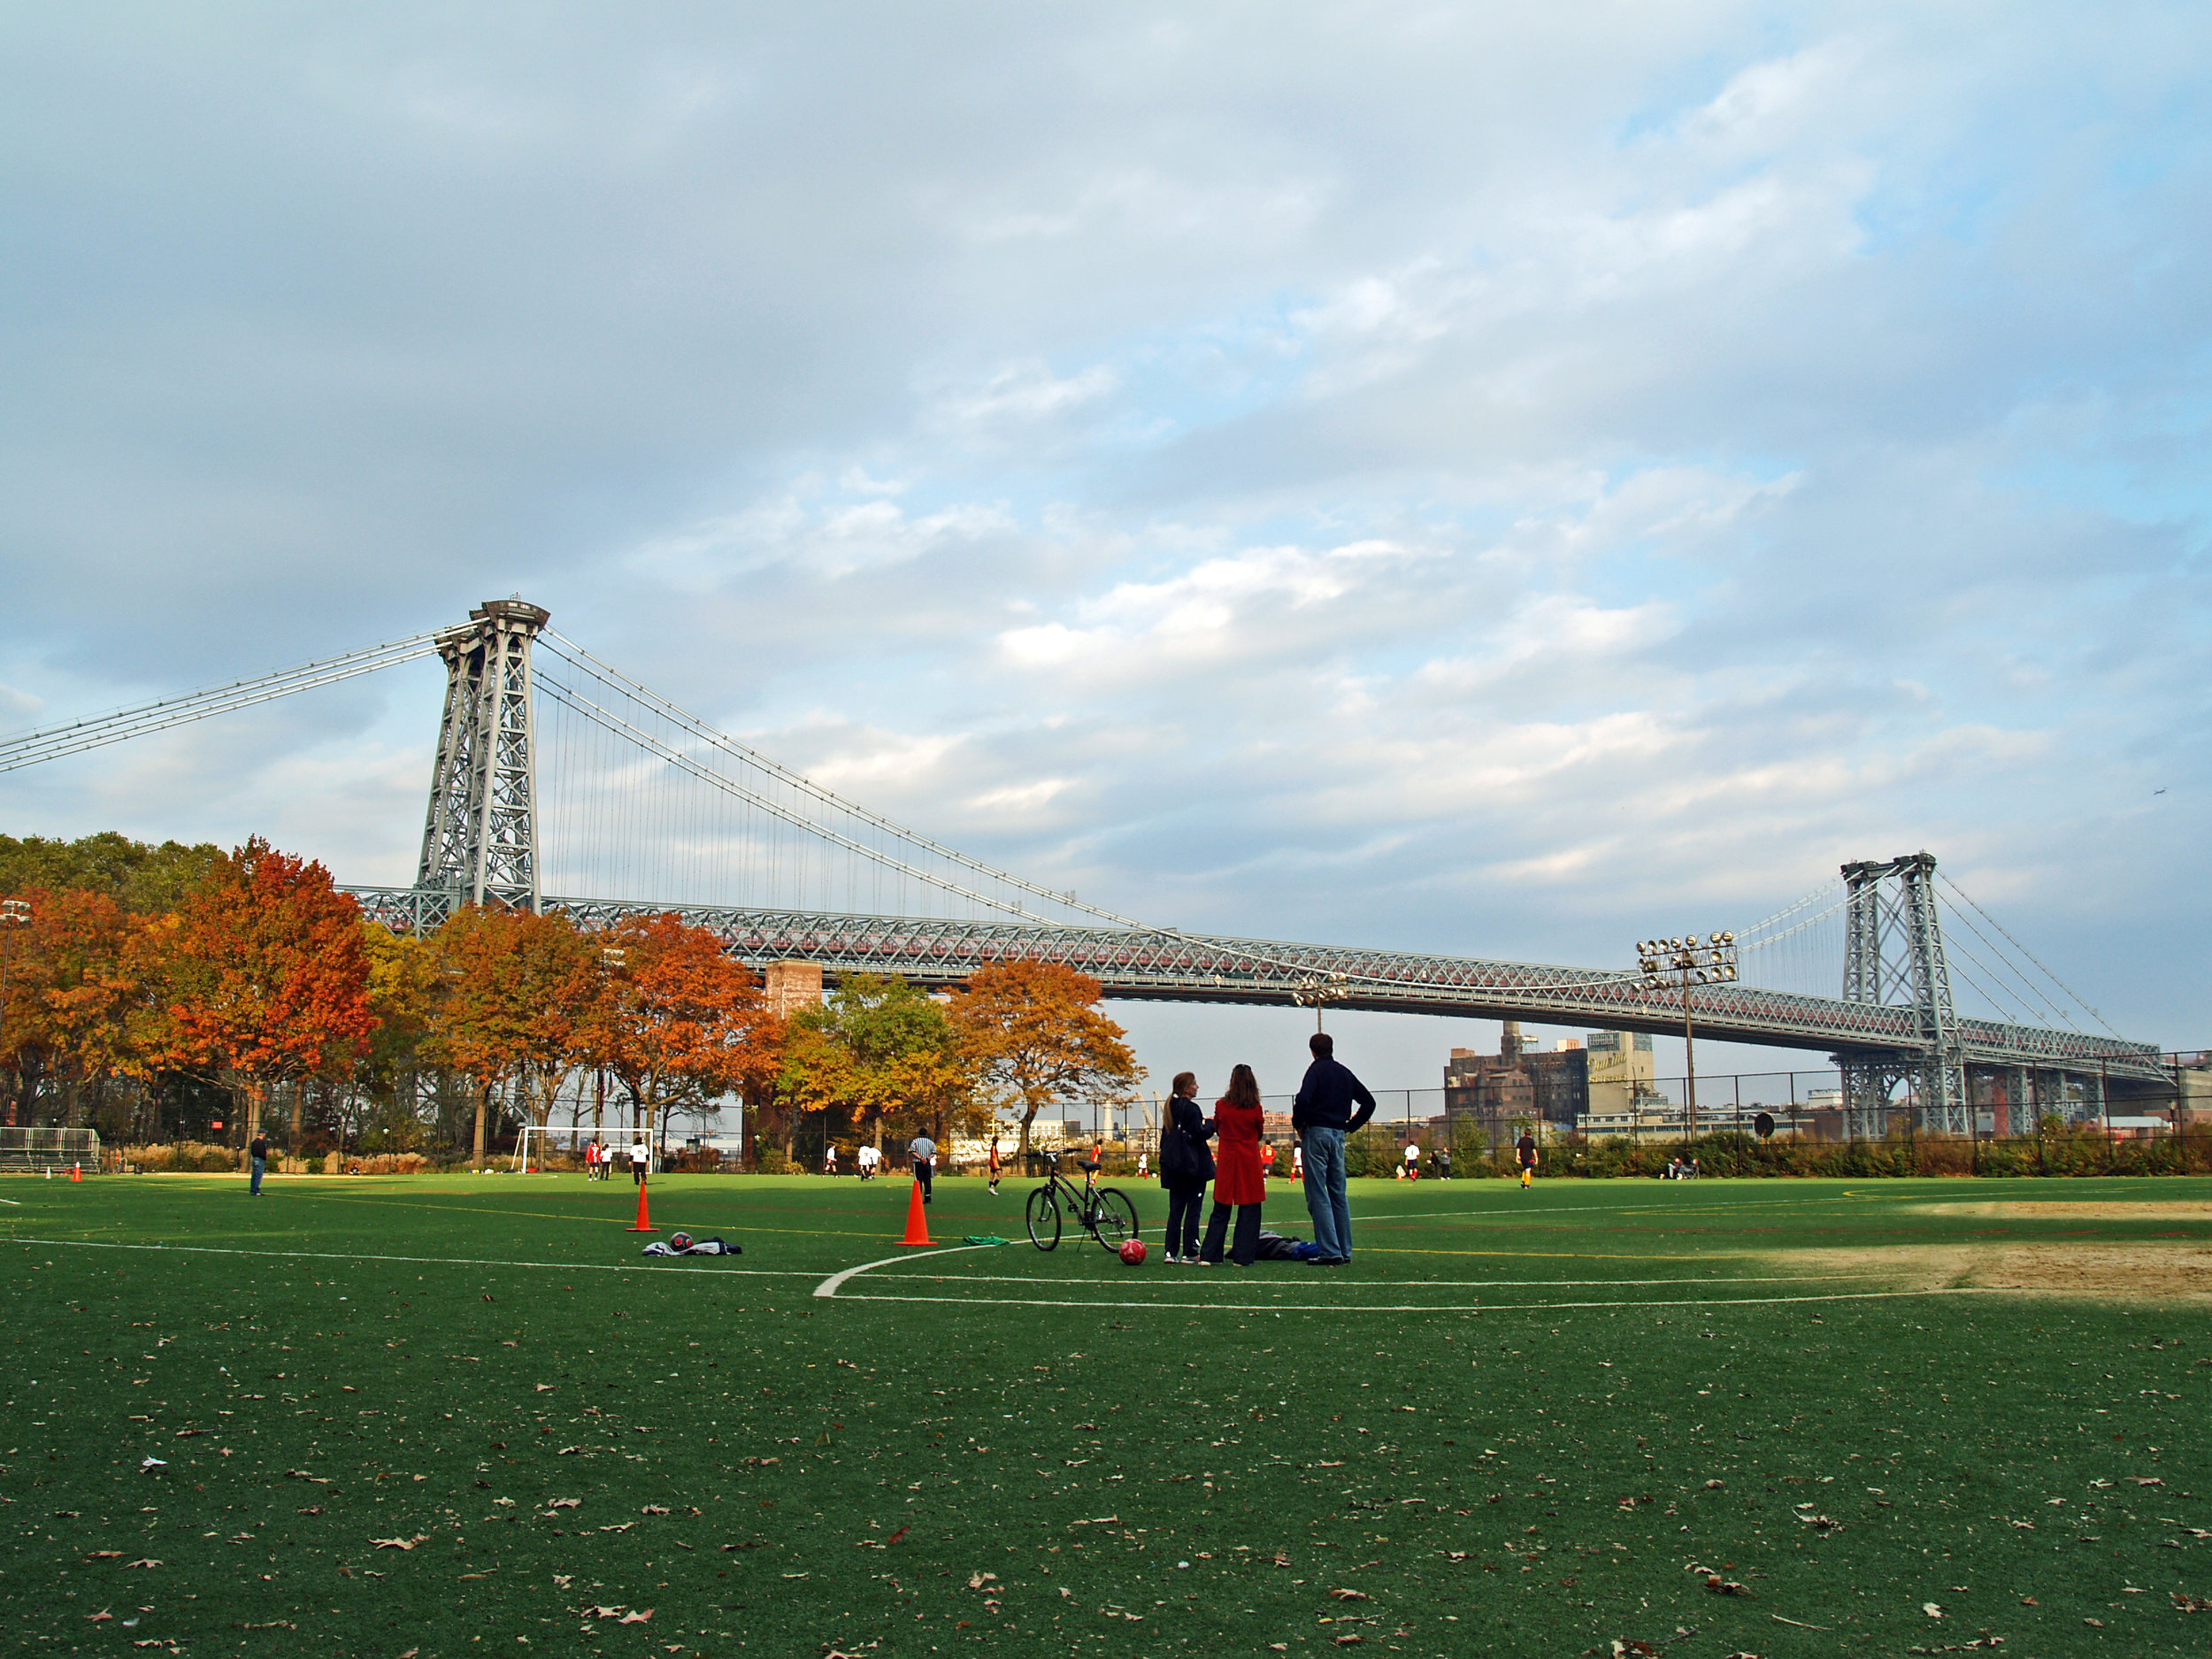 East_River_Park_in_Fall_2008_number_2.jpg